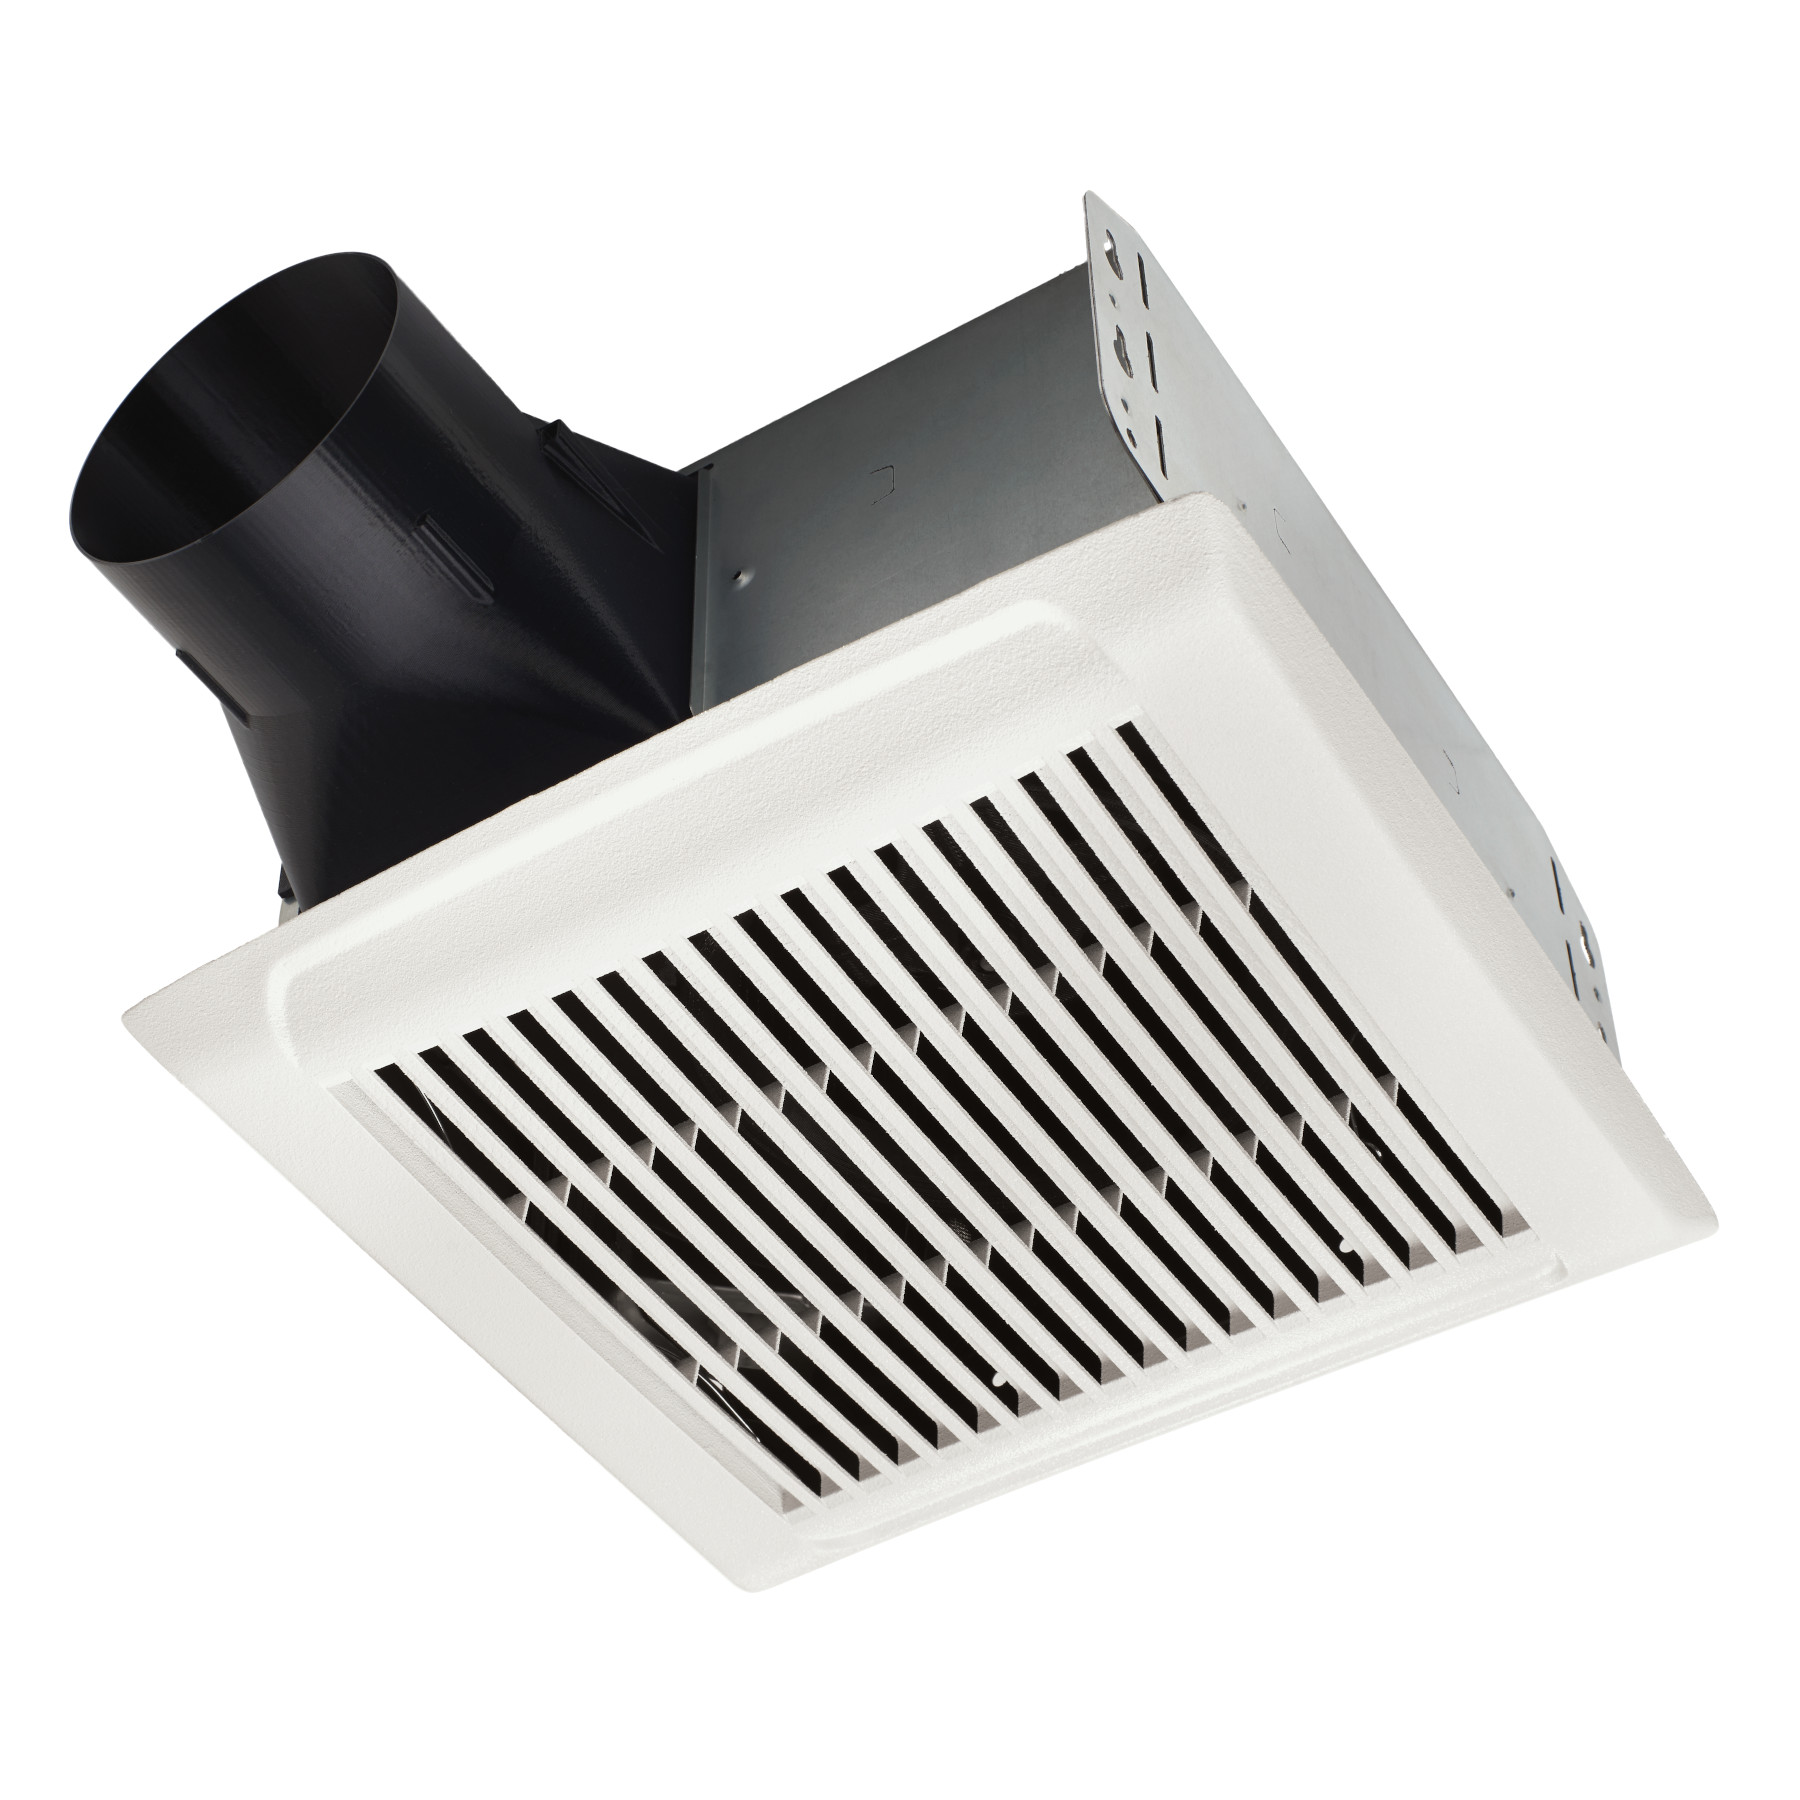 Flex Series 50 CFM Ceiling Room Side Installation Bathroom Exhaust Fan, ENERGY STAR*